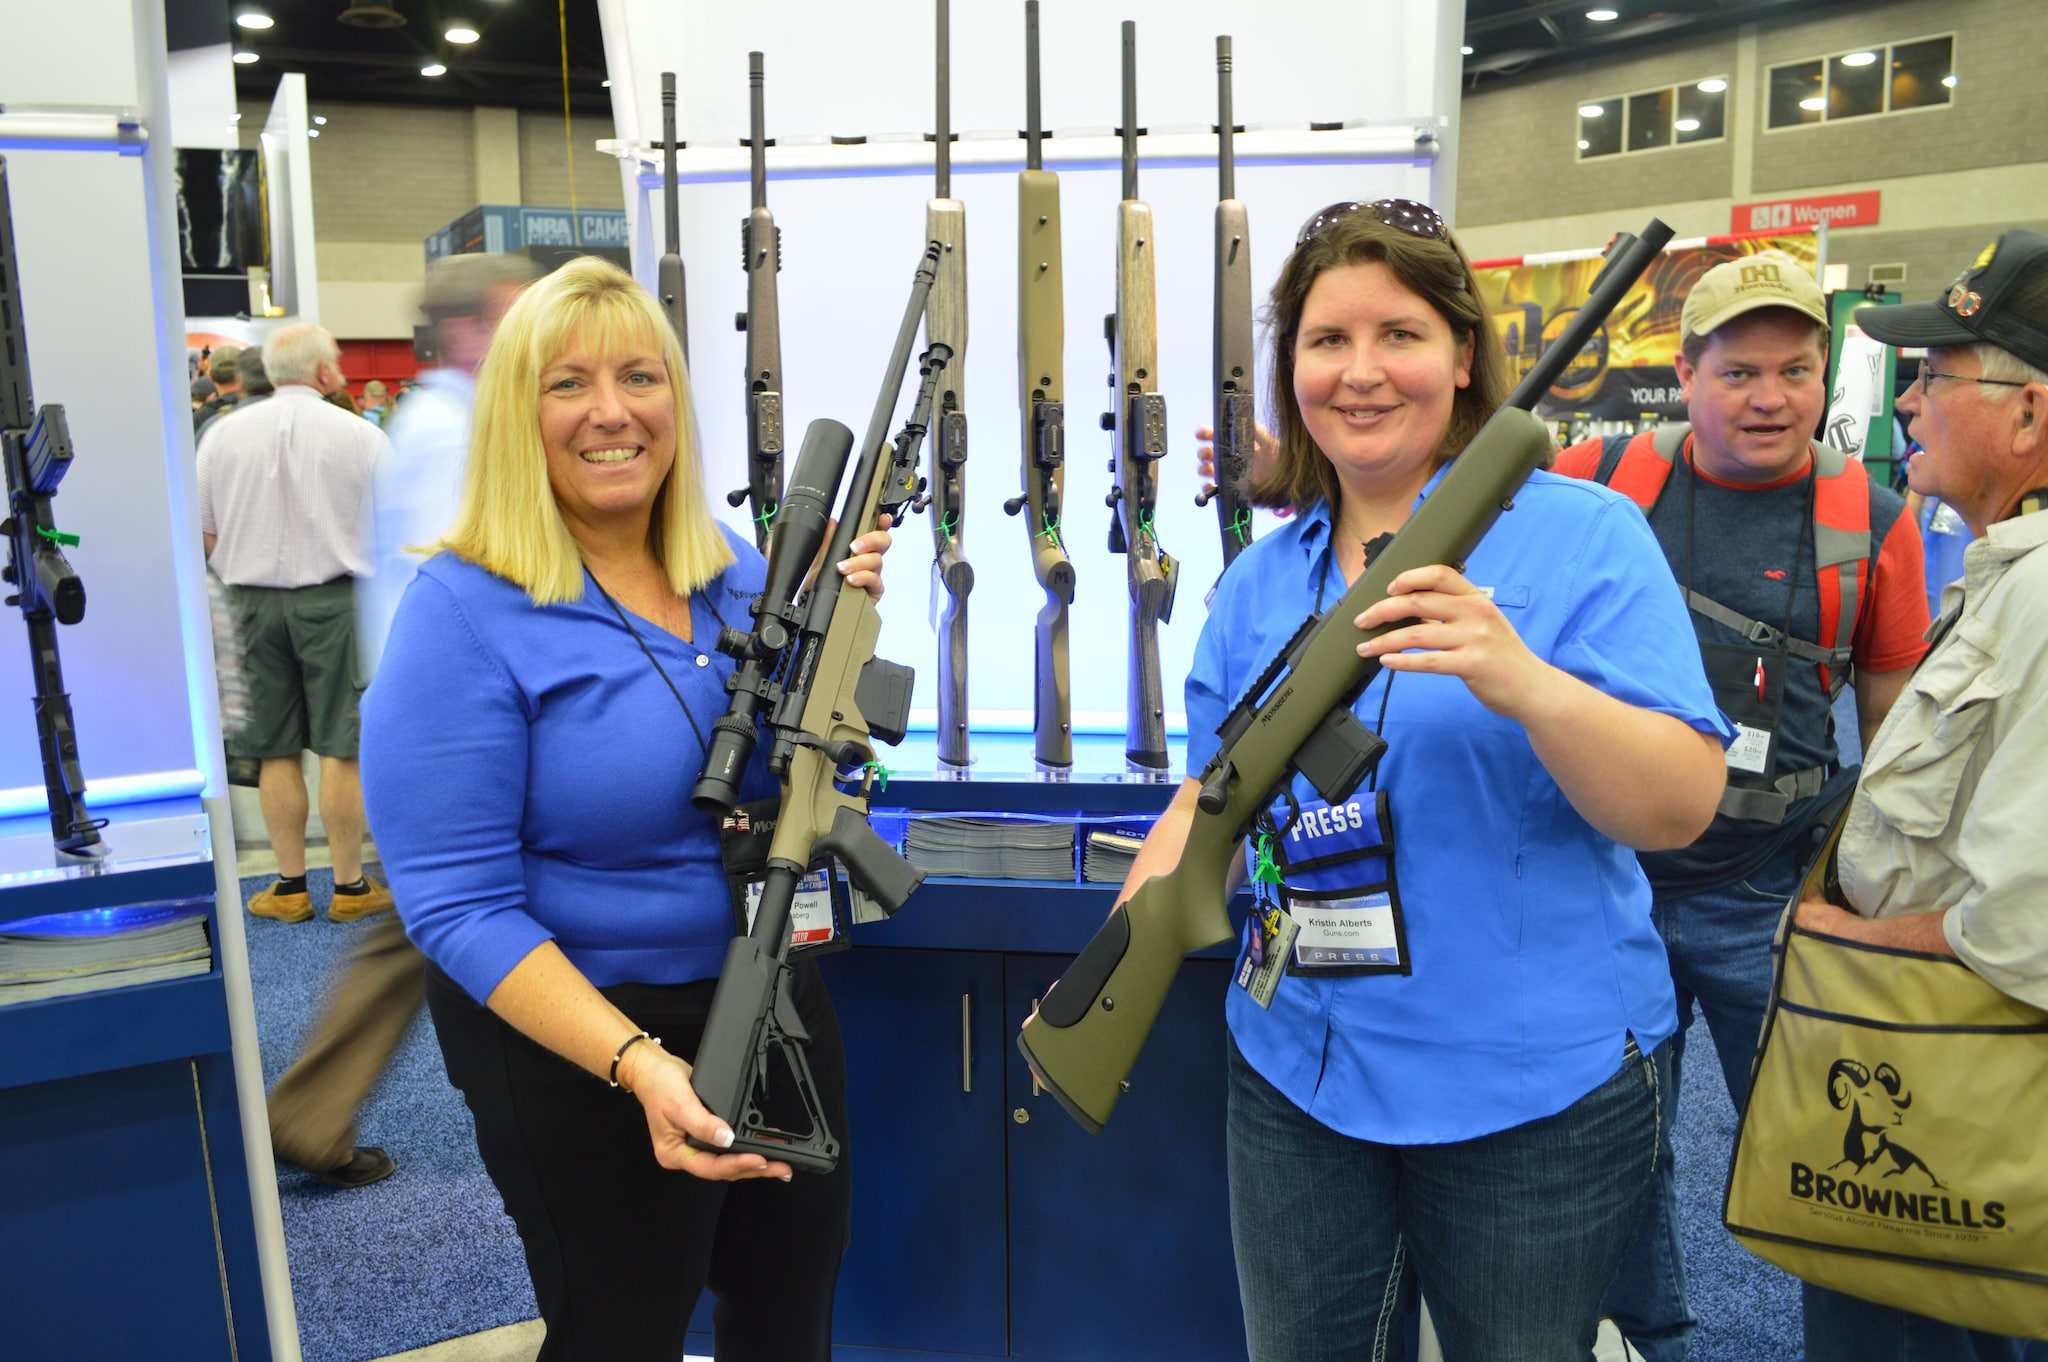 Mossberg's Light Chassis (left) and Long Range (right) rifles expand the existing MVP lineup for varmint and distance hunters.